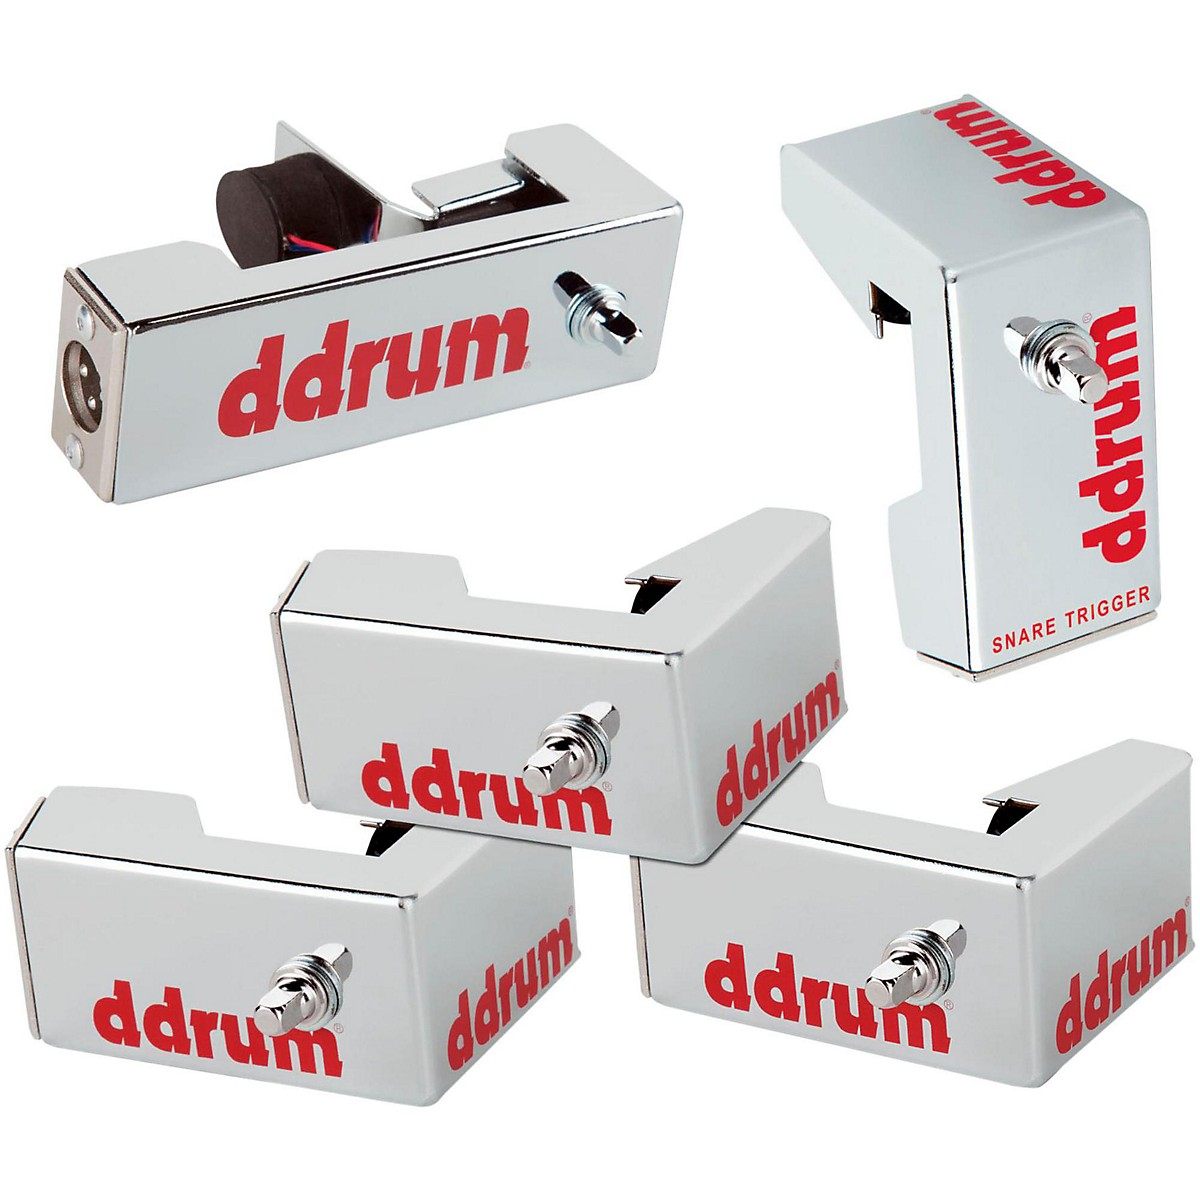 ddrum Chrome Elite Advanced Engineered Drum Triggers - 5-Piece Set